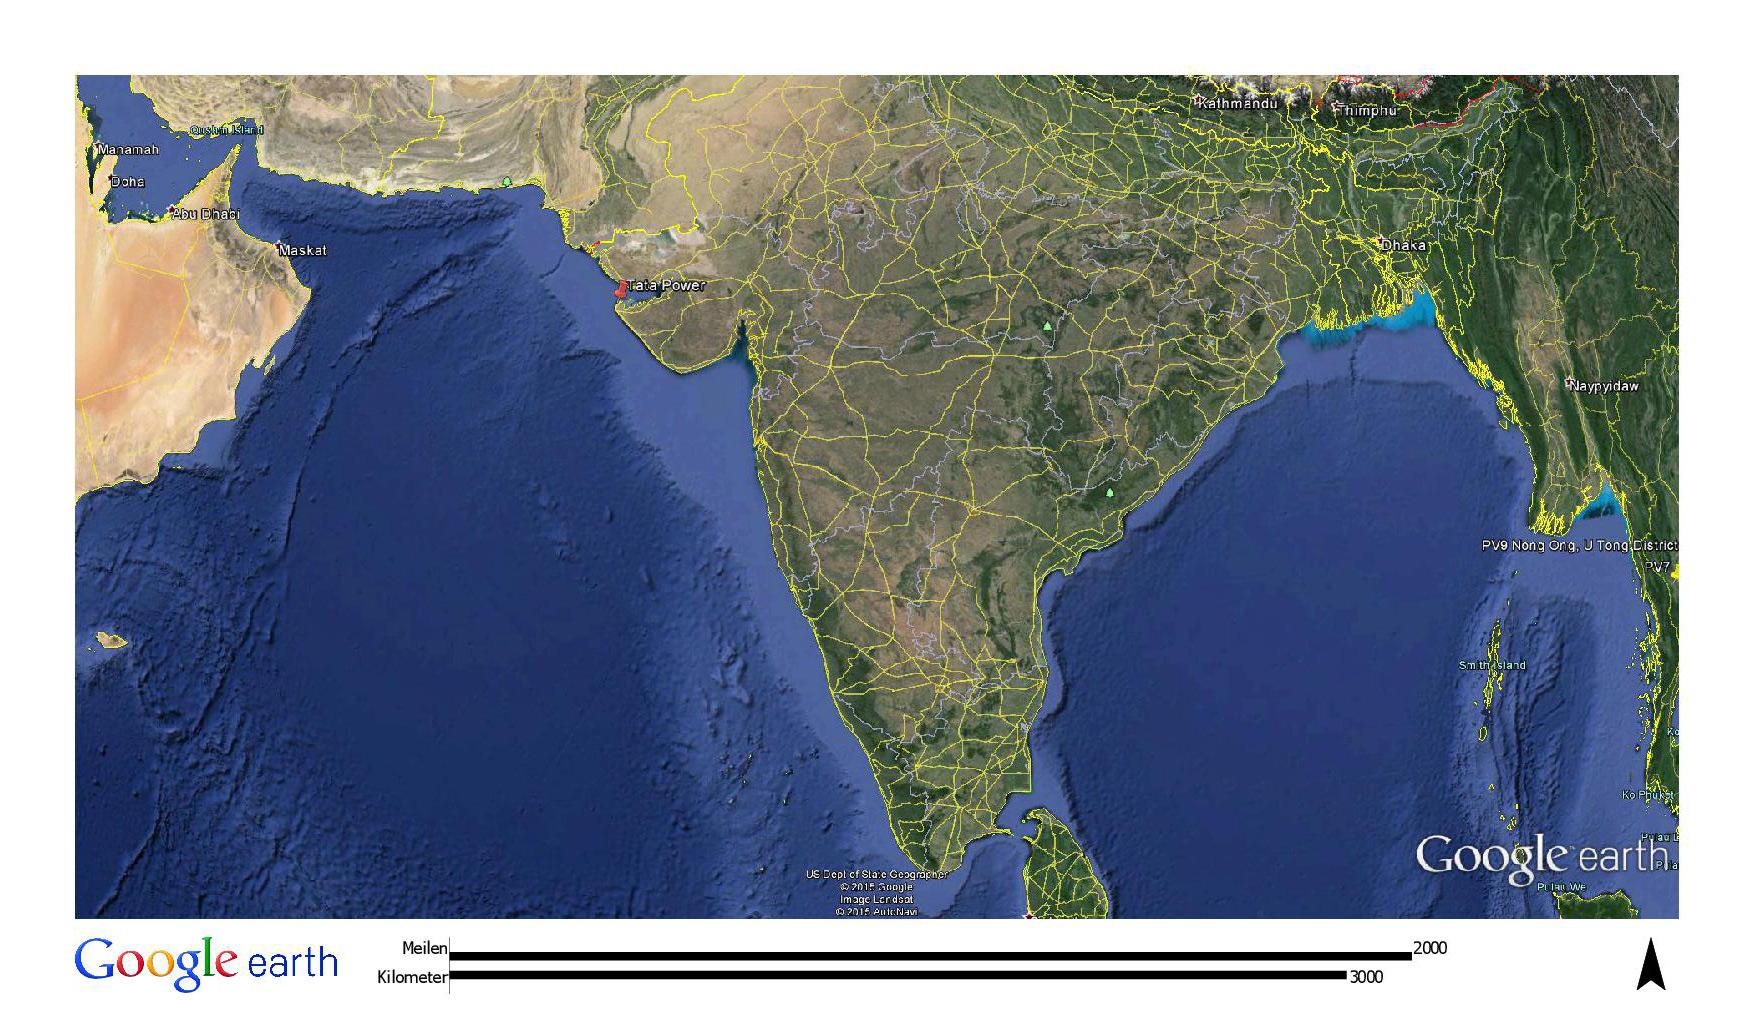 The PV system in India is located 100 meters from the ocean.